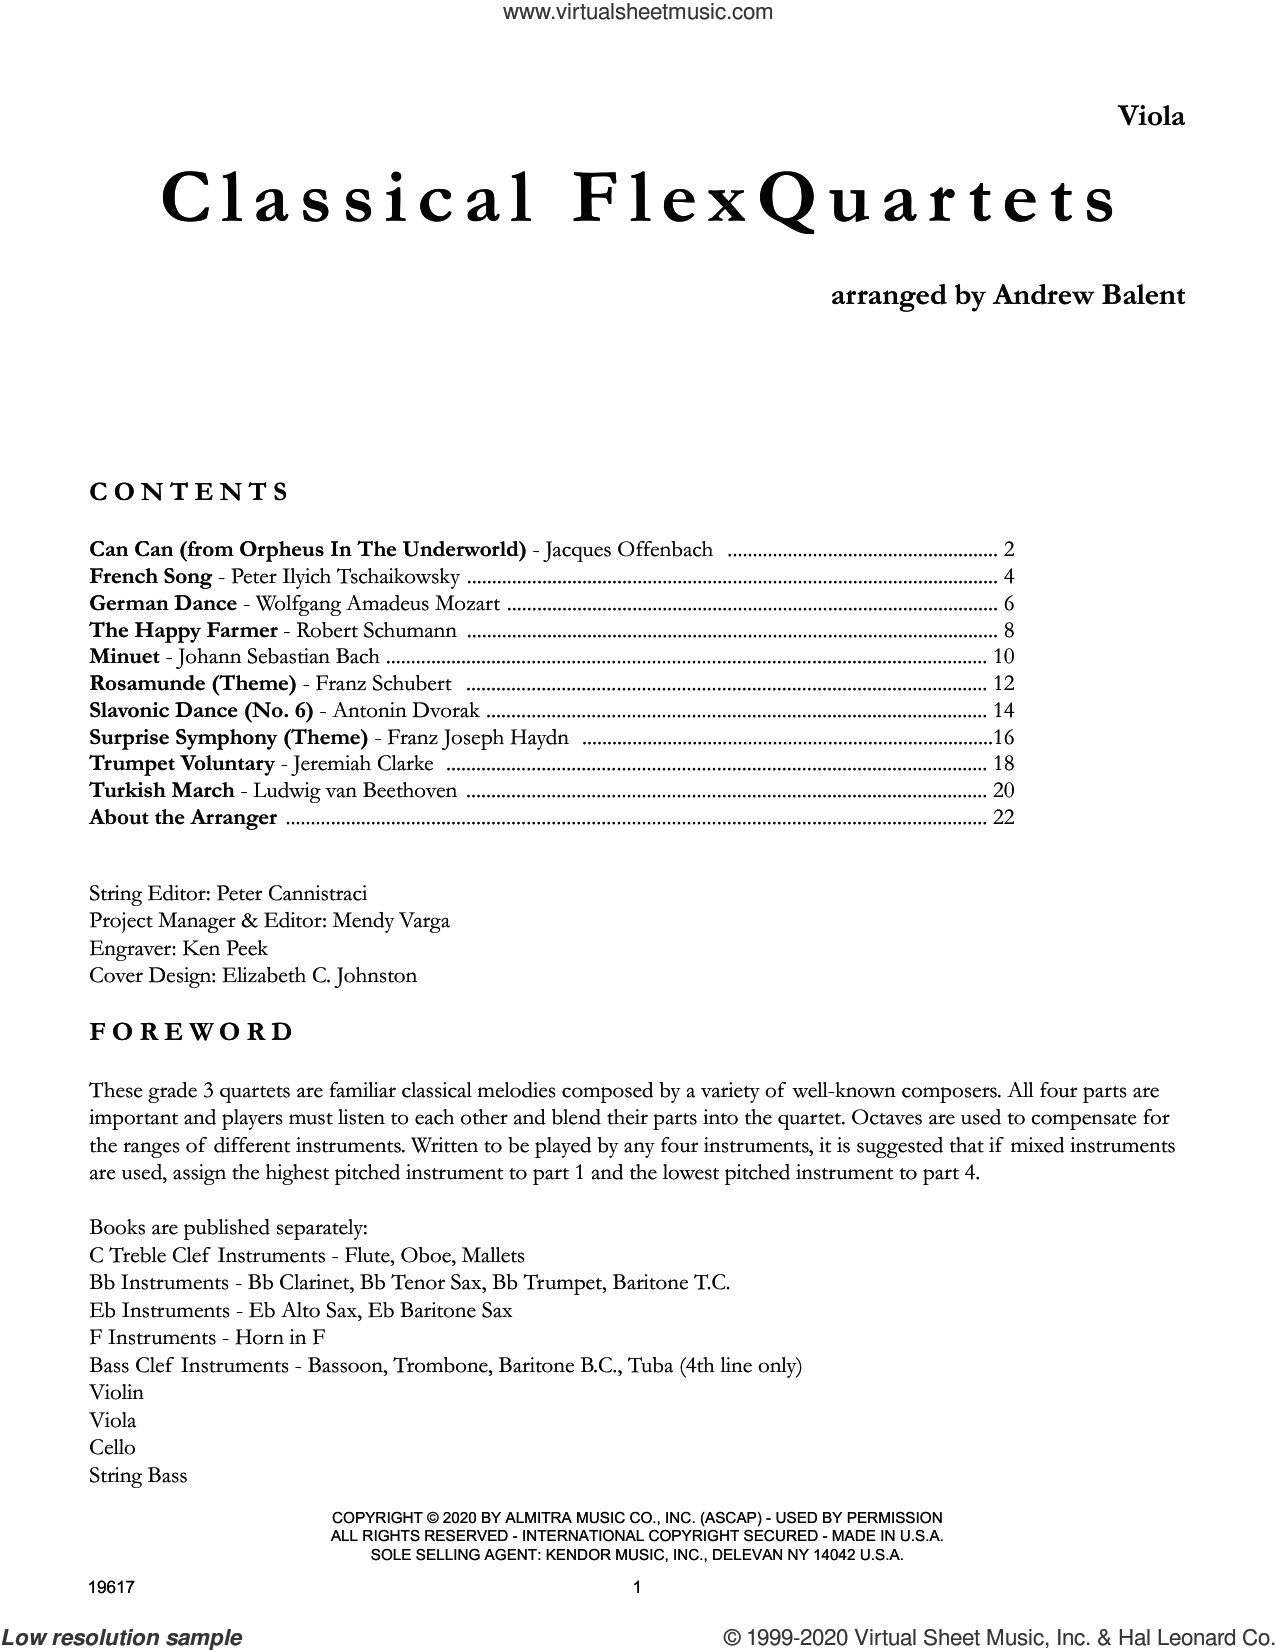 Classical Flexquartets (arr. Andrew Balent) - Viola sheet music for string orchestra  and Andrew Balent, classical score, intermediate skill level